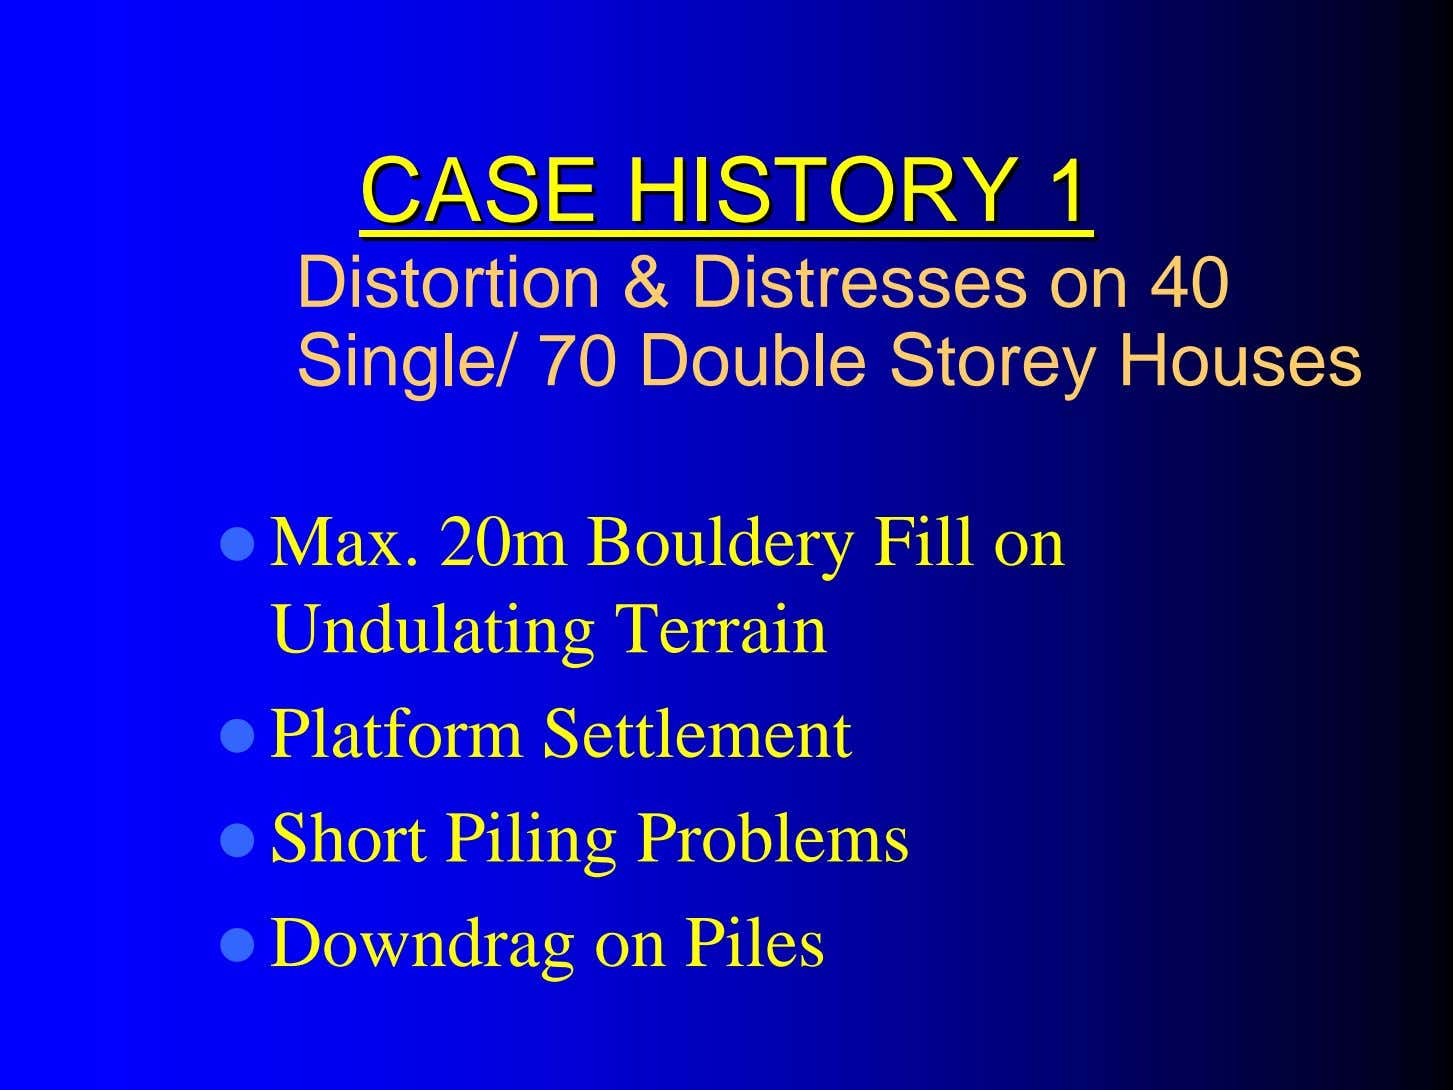 CASECASE HISTORYHISTORY 11 Distortion & Distresses on 40 Single/ 70 Double Storey Houses Max. 20m